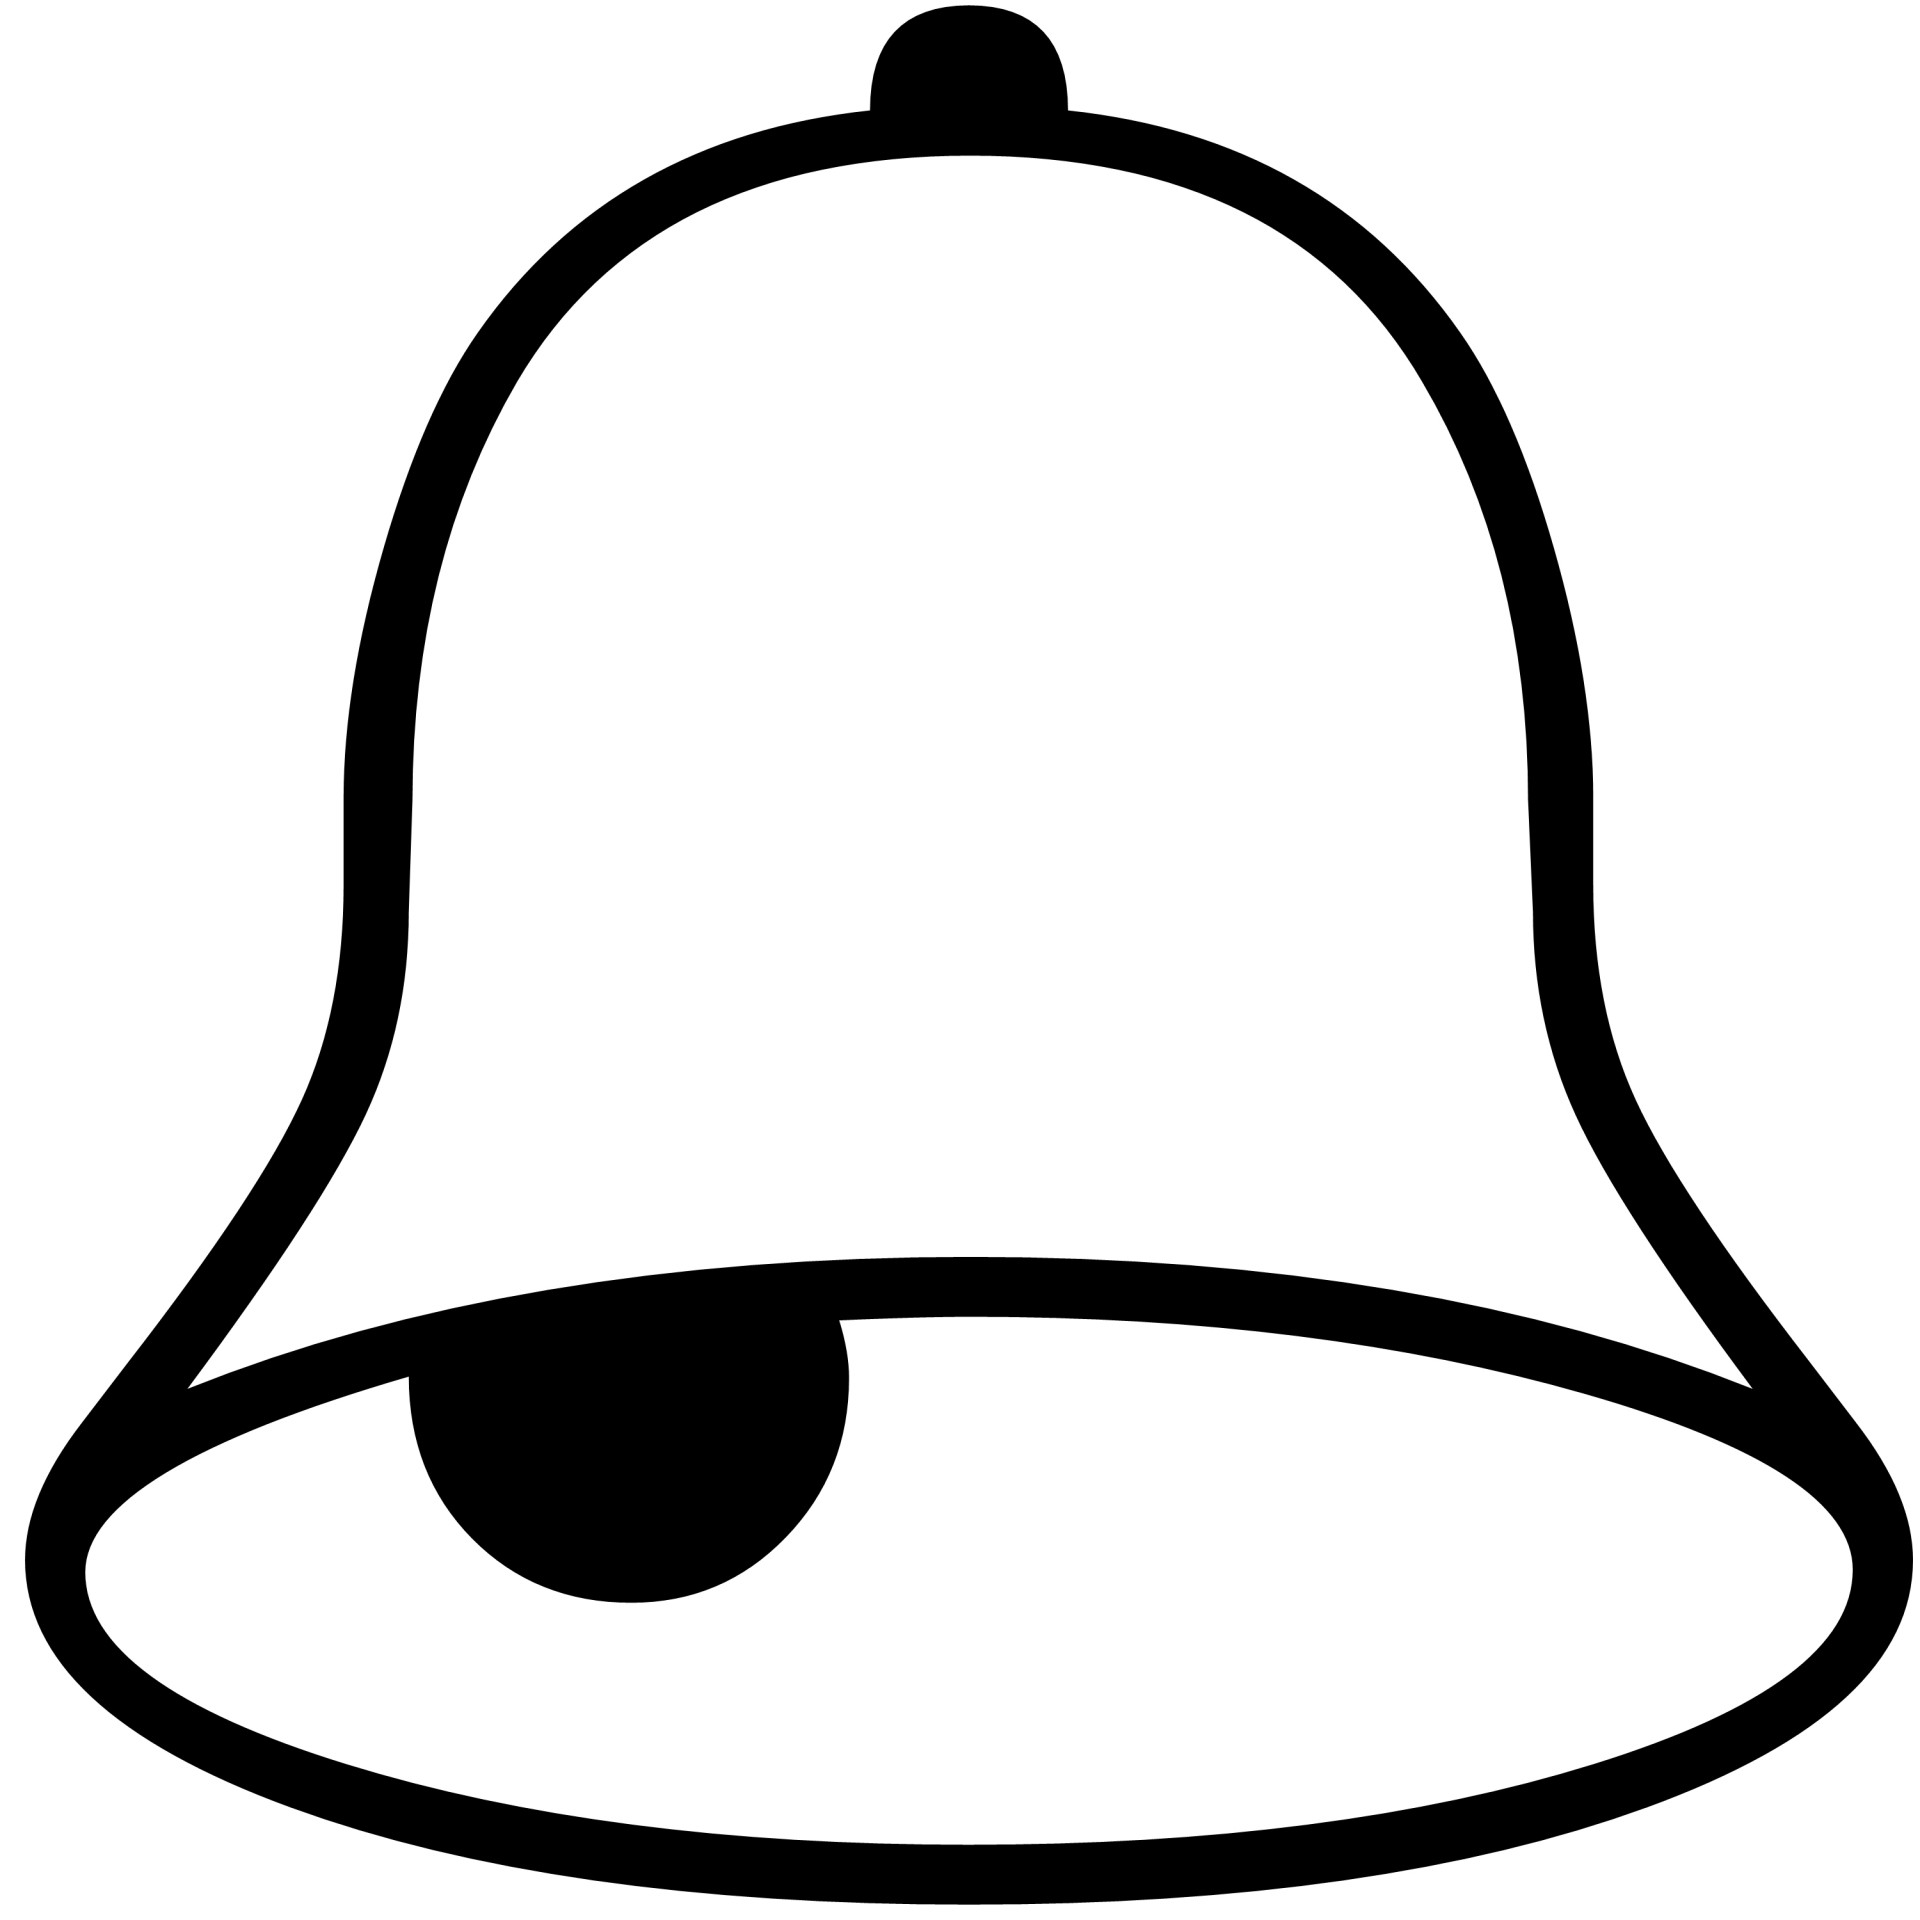 Bell Silhouette Free Stock Photo